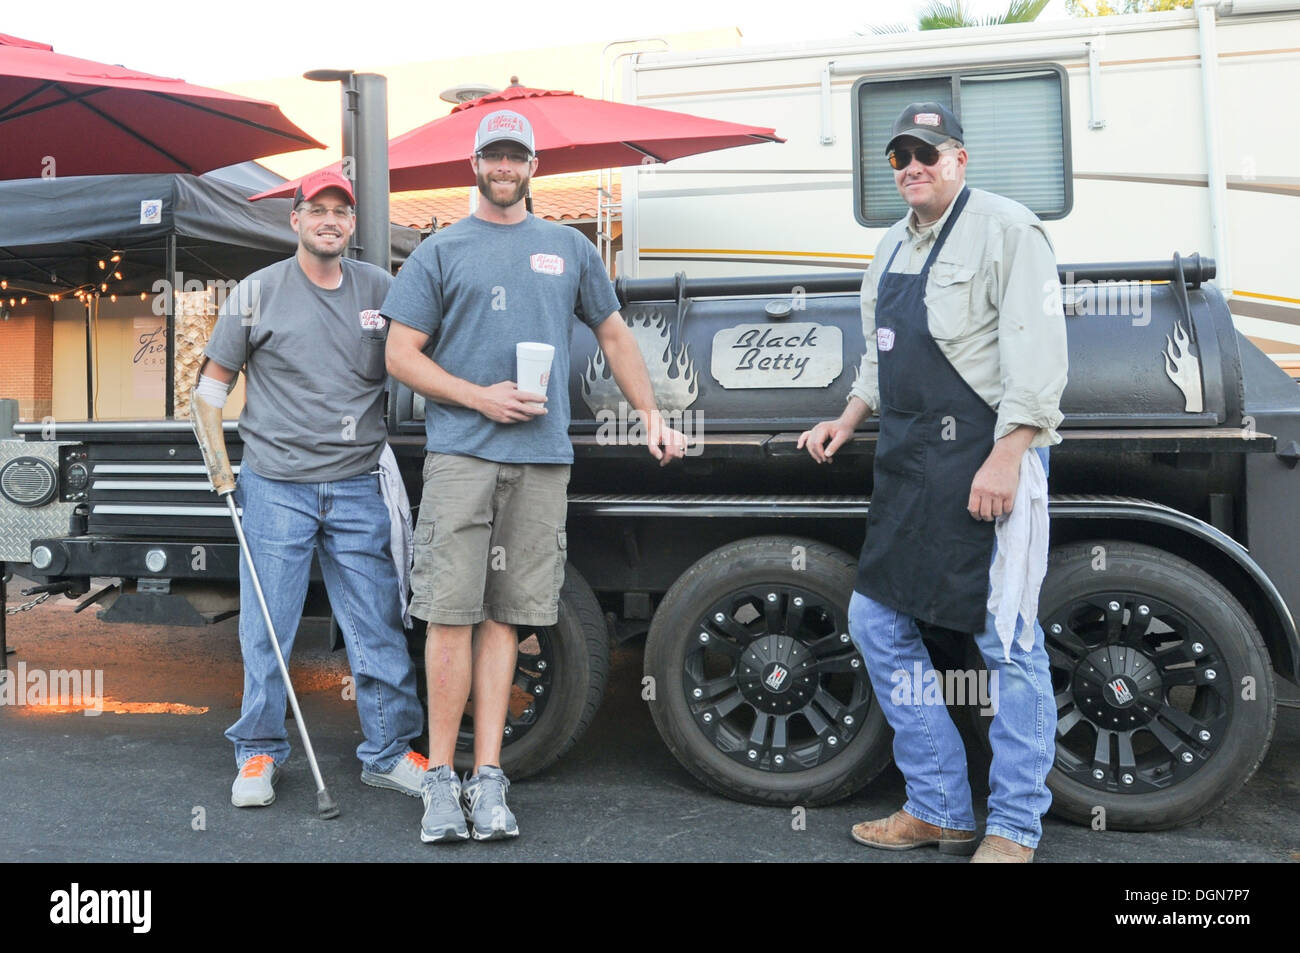 From left, Michael Lackey, Madux Hobbs and Robert Flowers, members of the Black Betty Barbecue team from Roswell, N.M., present - Stock Image